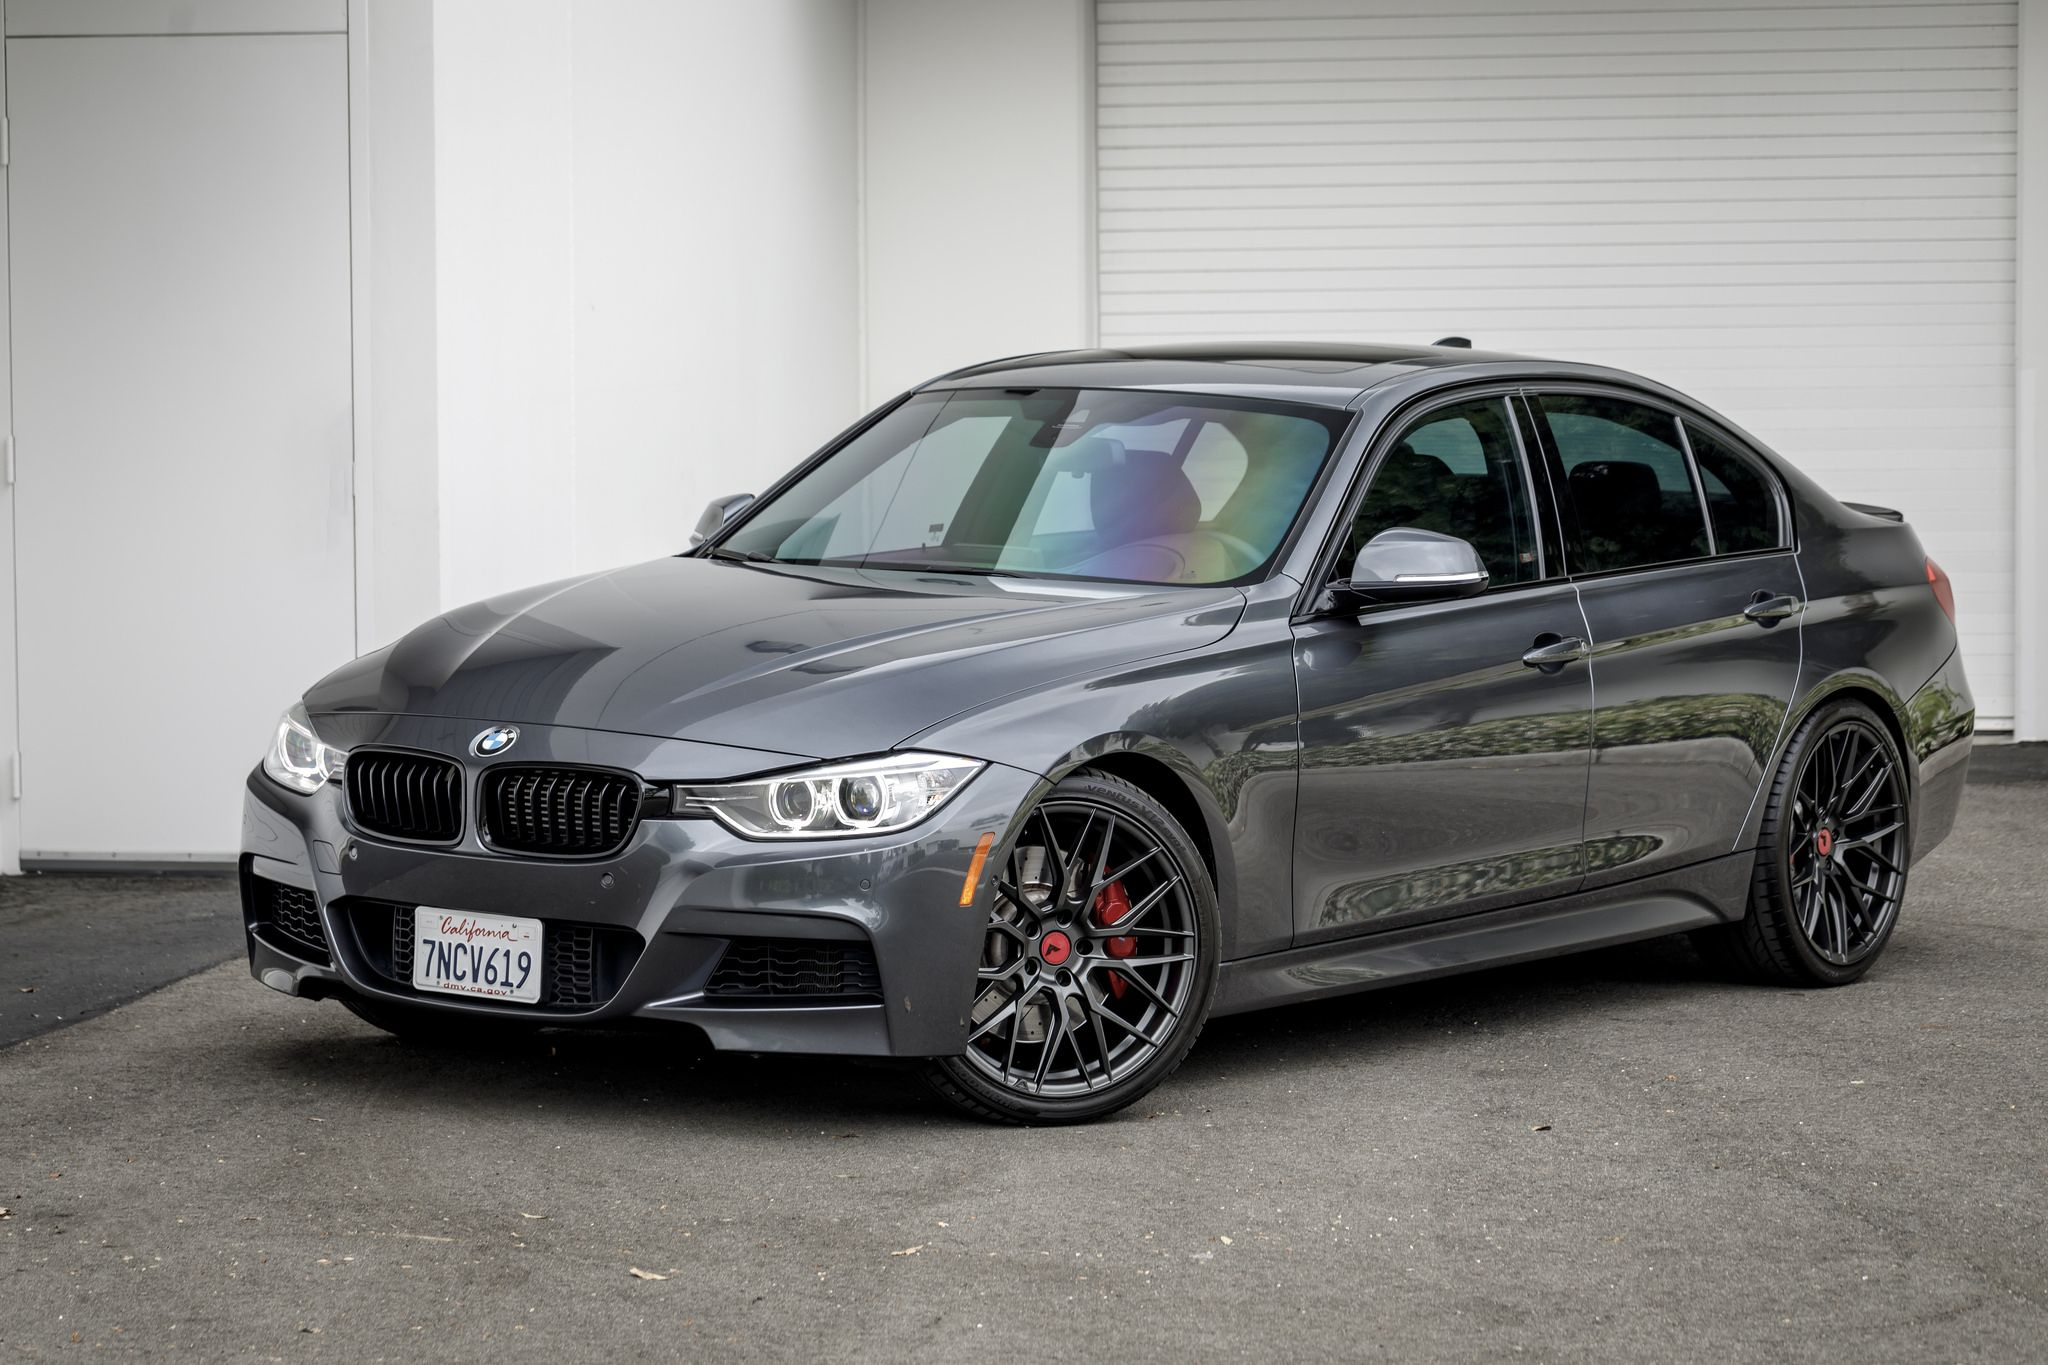 Mineral Gray Metallic Bmw F30 335i With Aftermarket Carbon